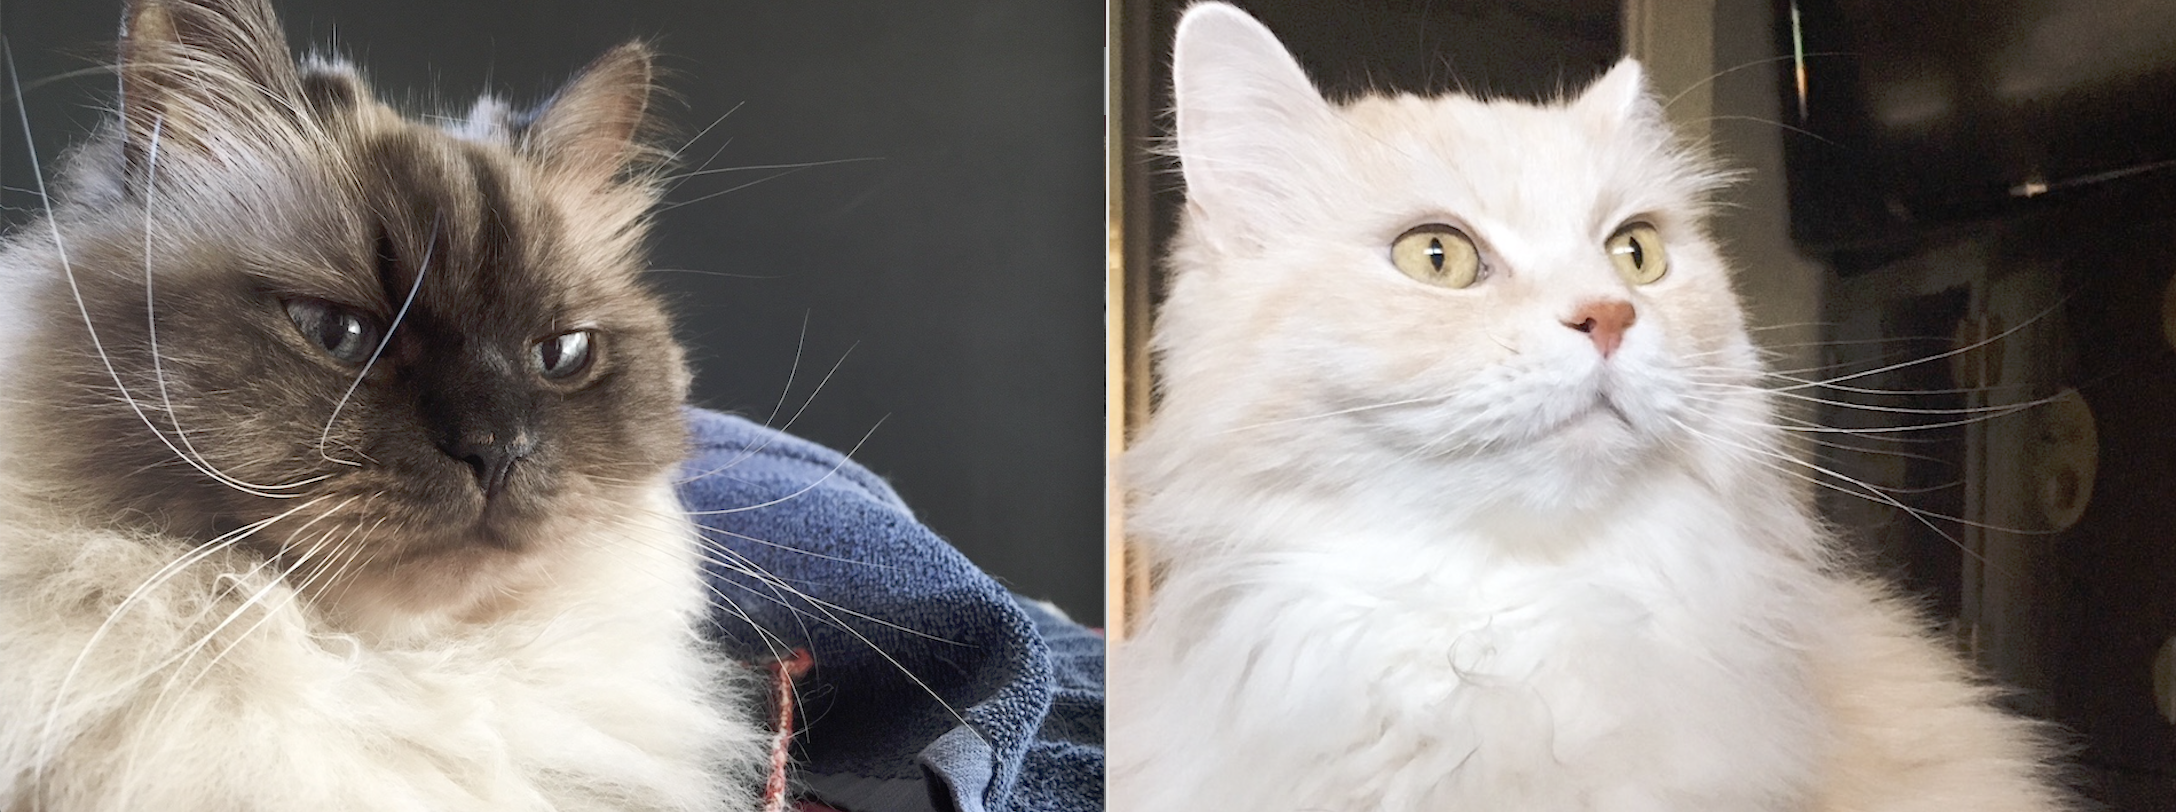 Jackson & Buckley - Jackson and Buckley are two bonded 12 year old purebred Himalayan boys and they need a new home ASAP. They are both healthy and super loving! They won't survive a pound so let's all make sure they never have to consider that option.